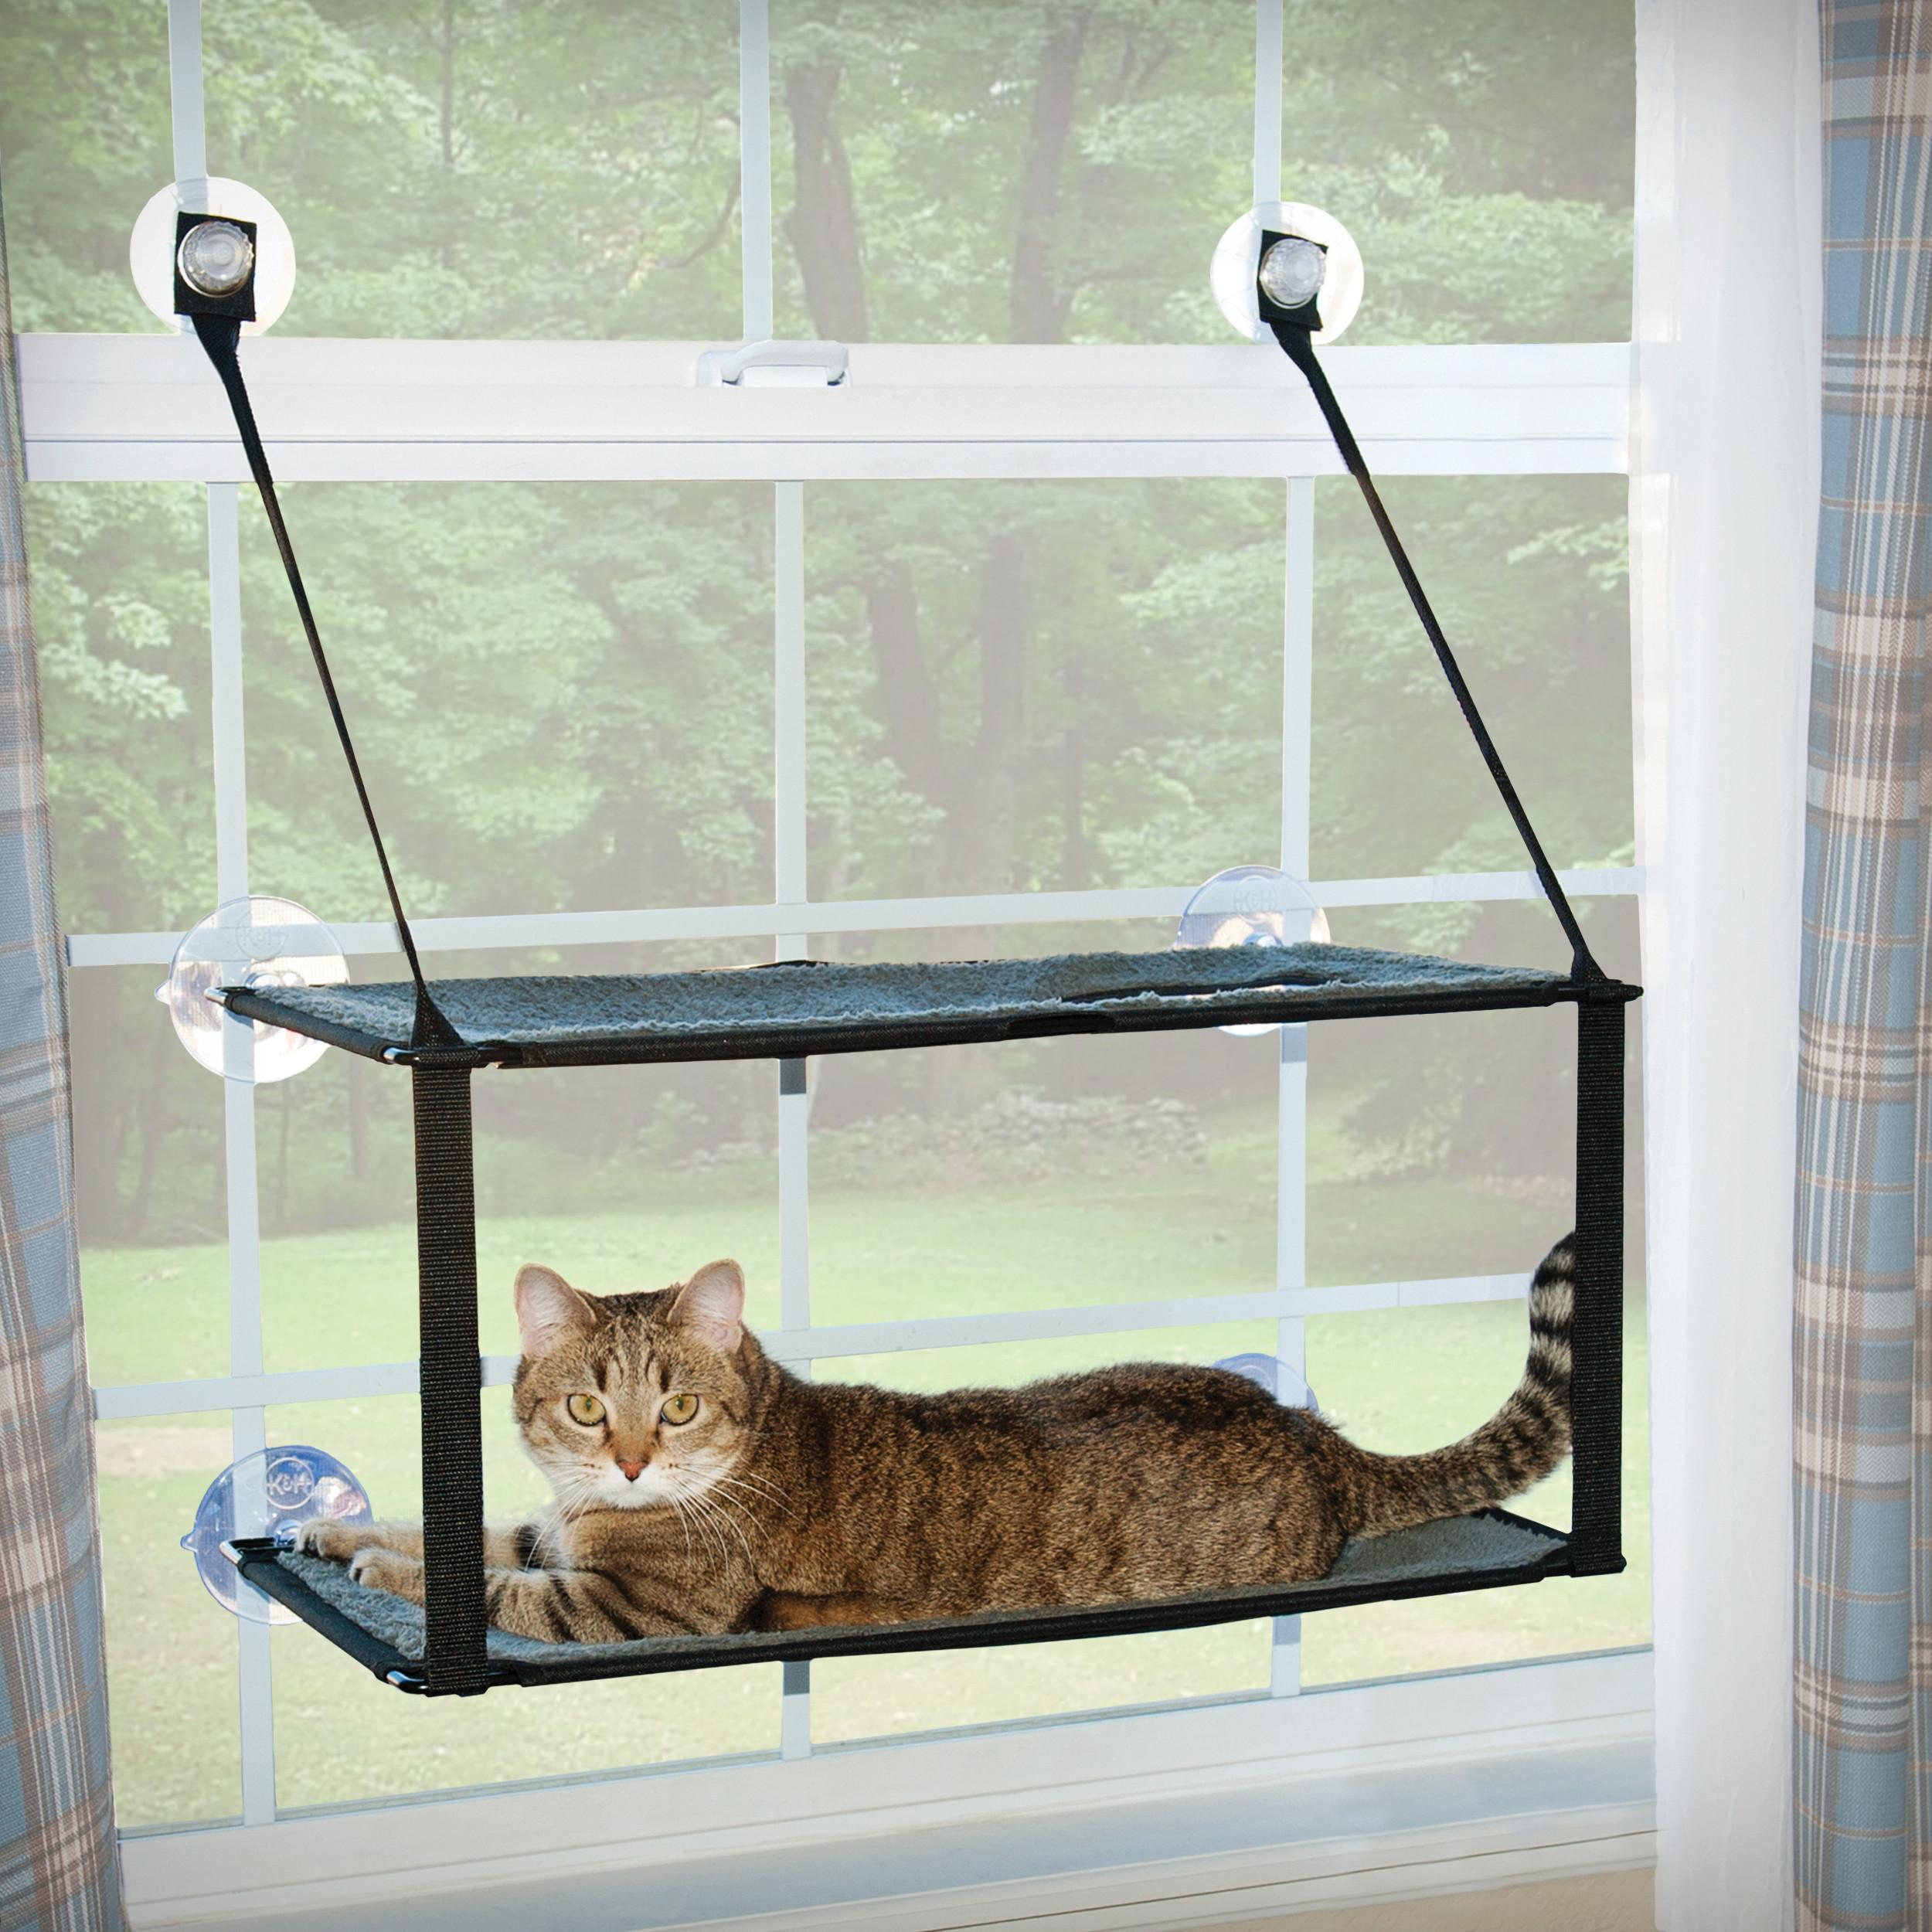 Manufacturing Kitty Sill Double Stack Window Mount